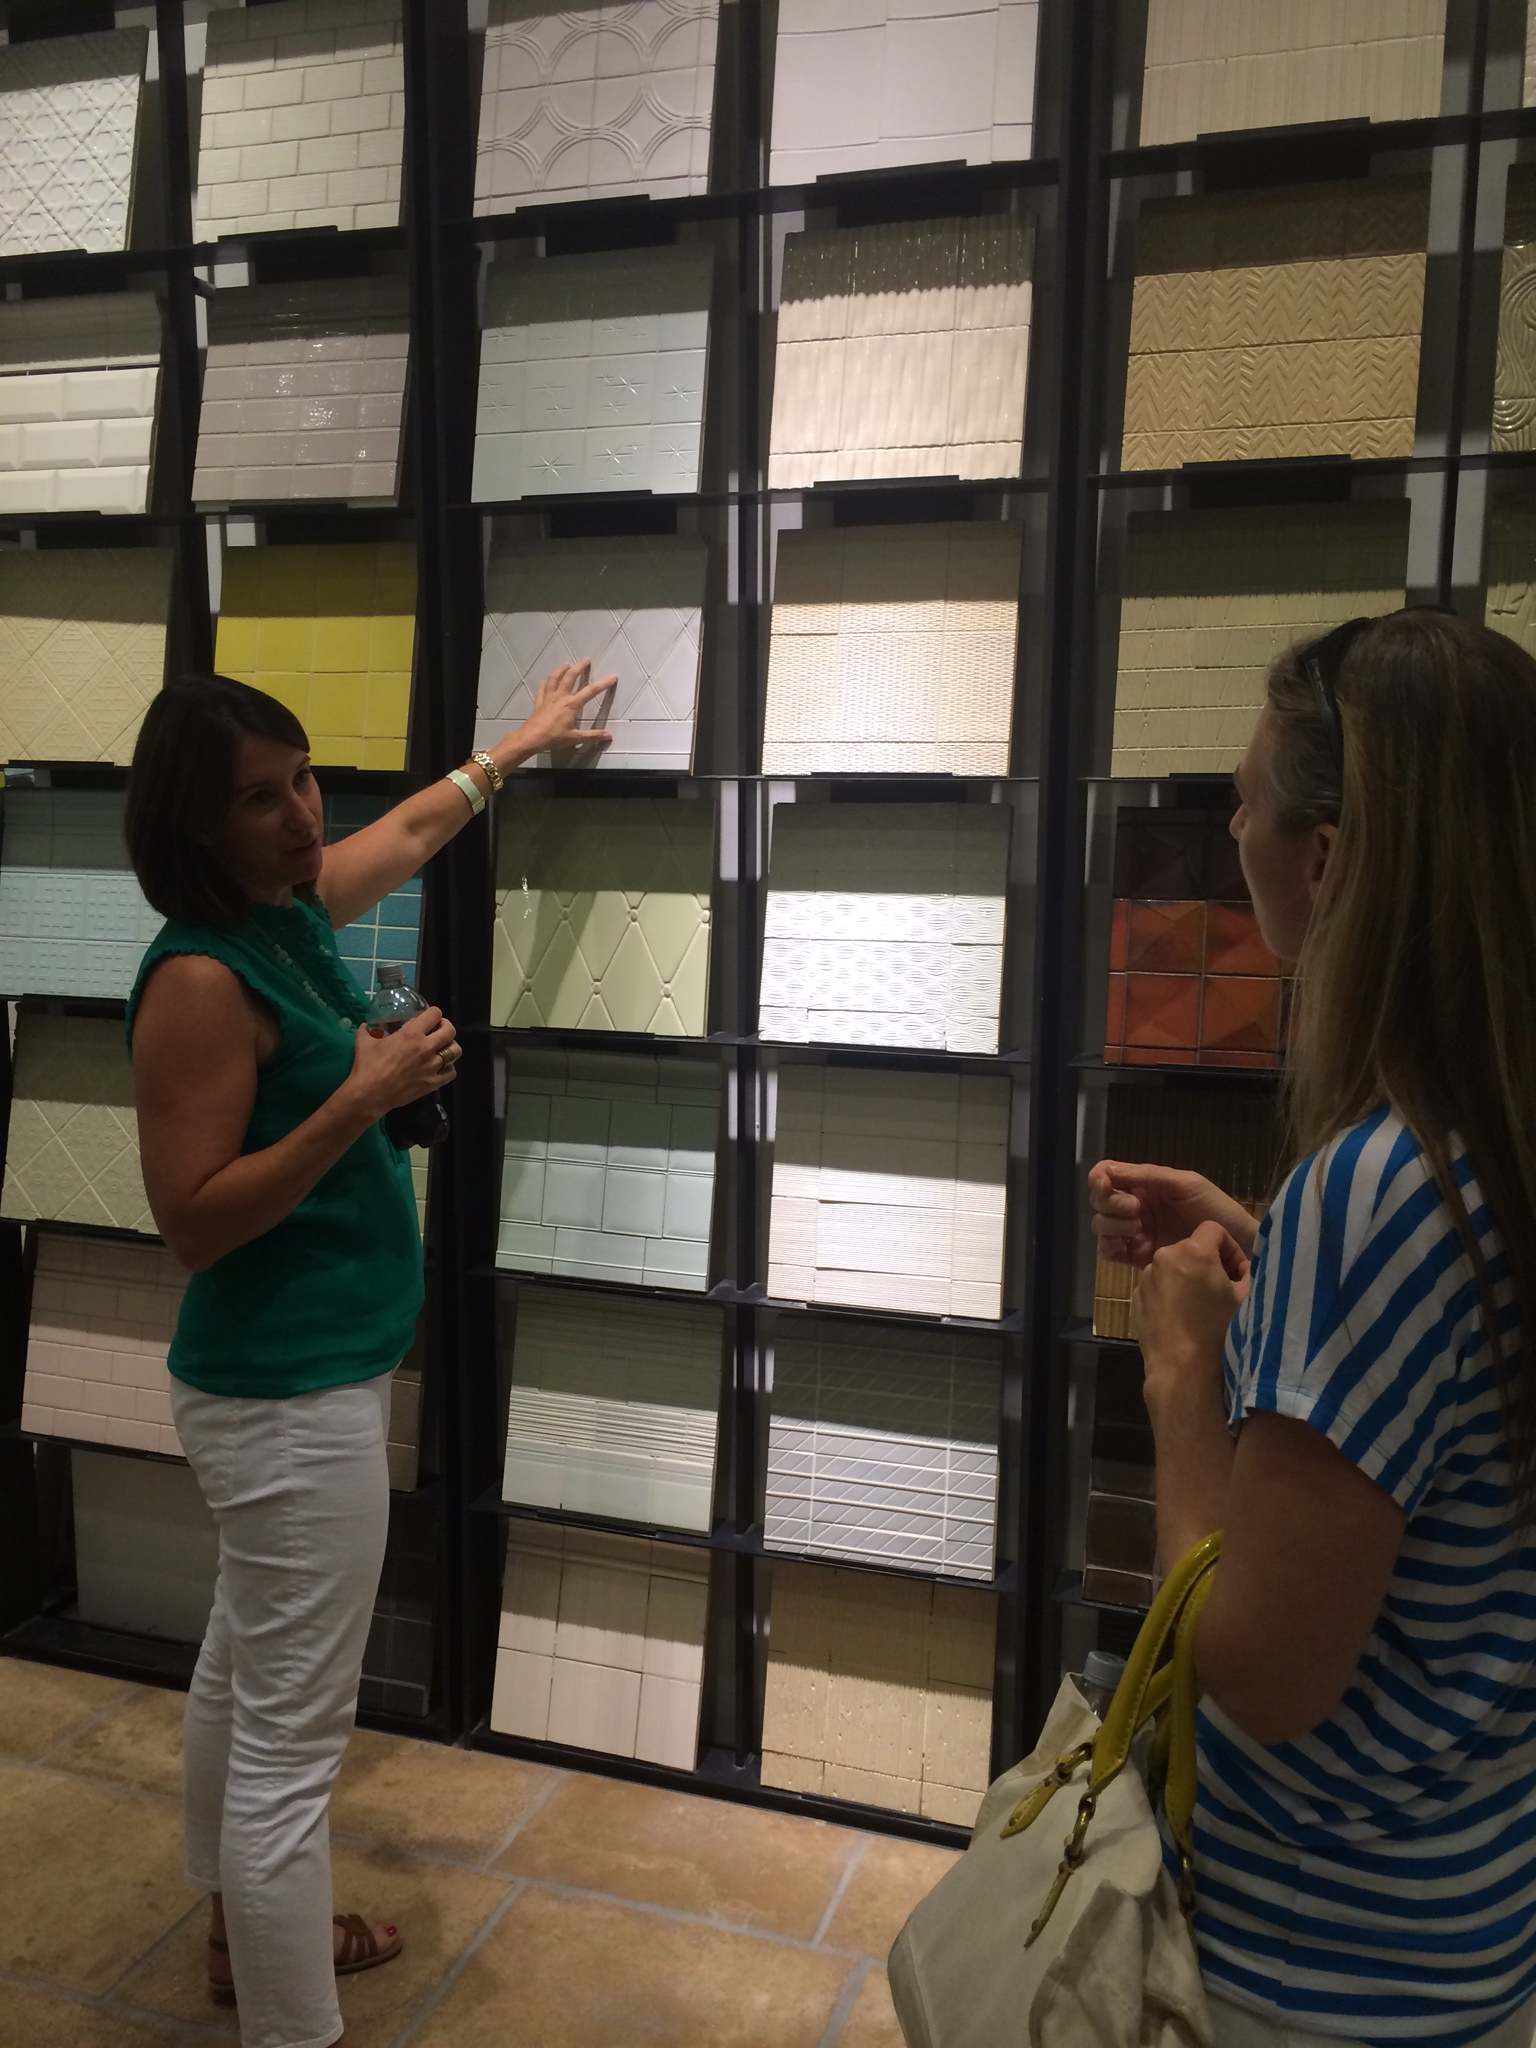 Look at this action shot! Nice work Jen. I could talk tile for hours. www.saranobledesigns.com (Kim Prado is patiently listening :) www.saranobledesigns.com